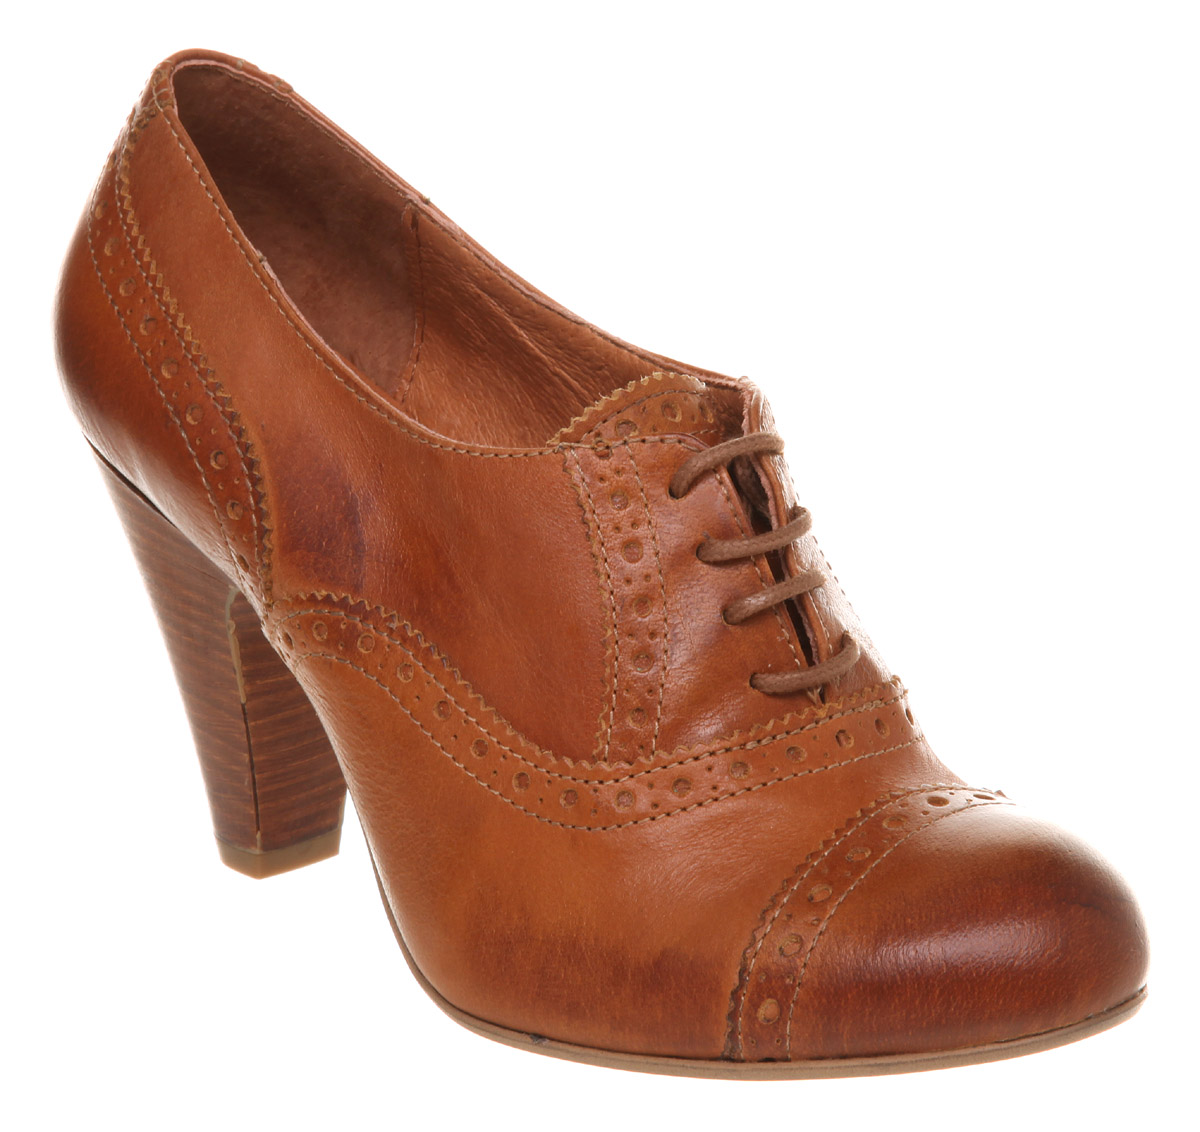 Brown Womens Shoes Brogues Boots